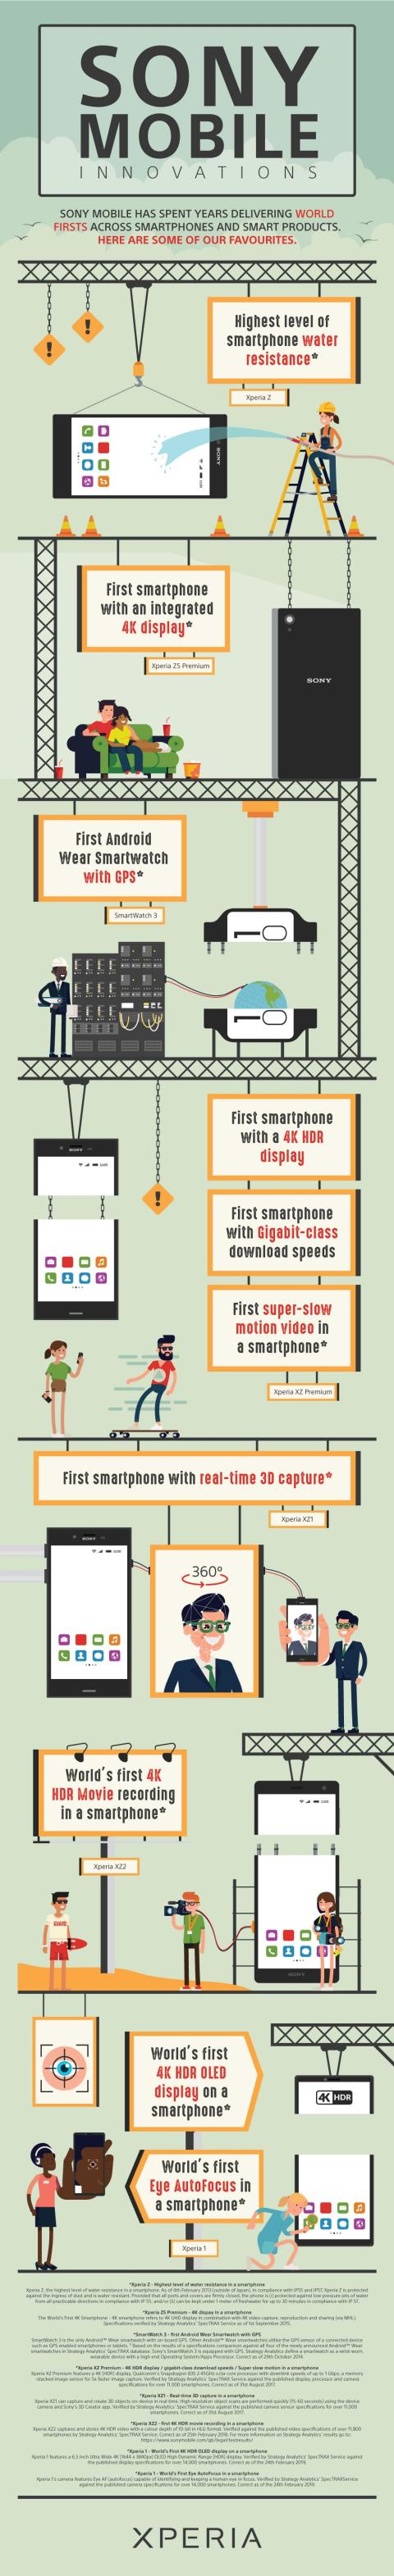 SONY-Mobile-Innovation-Infographic-Revised-min